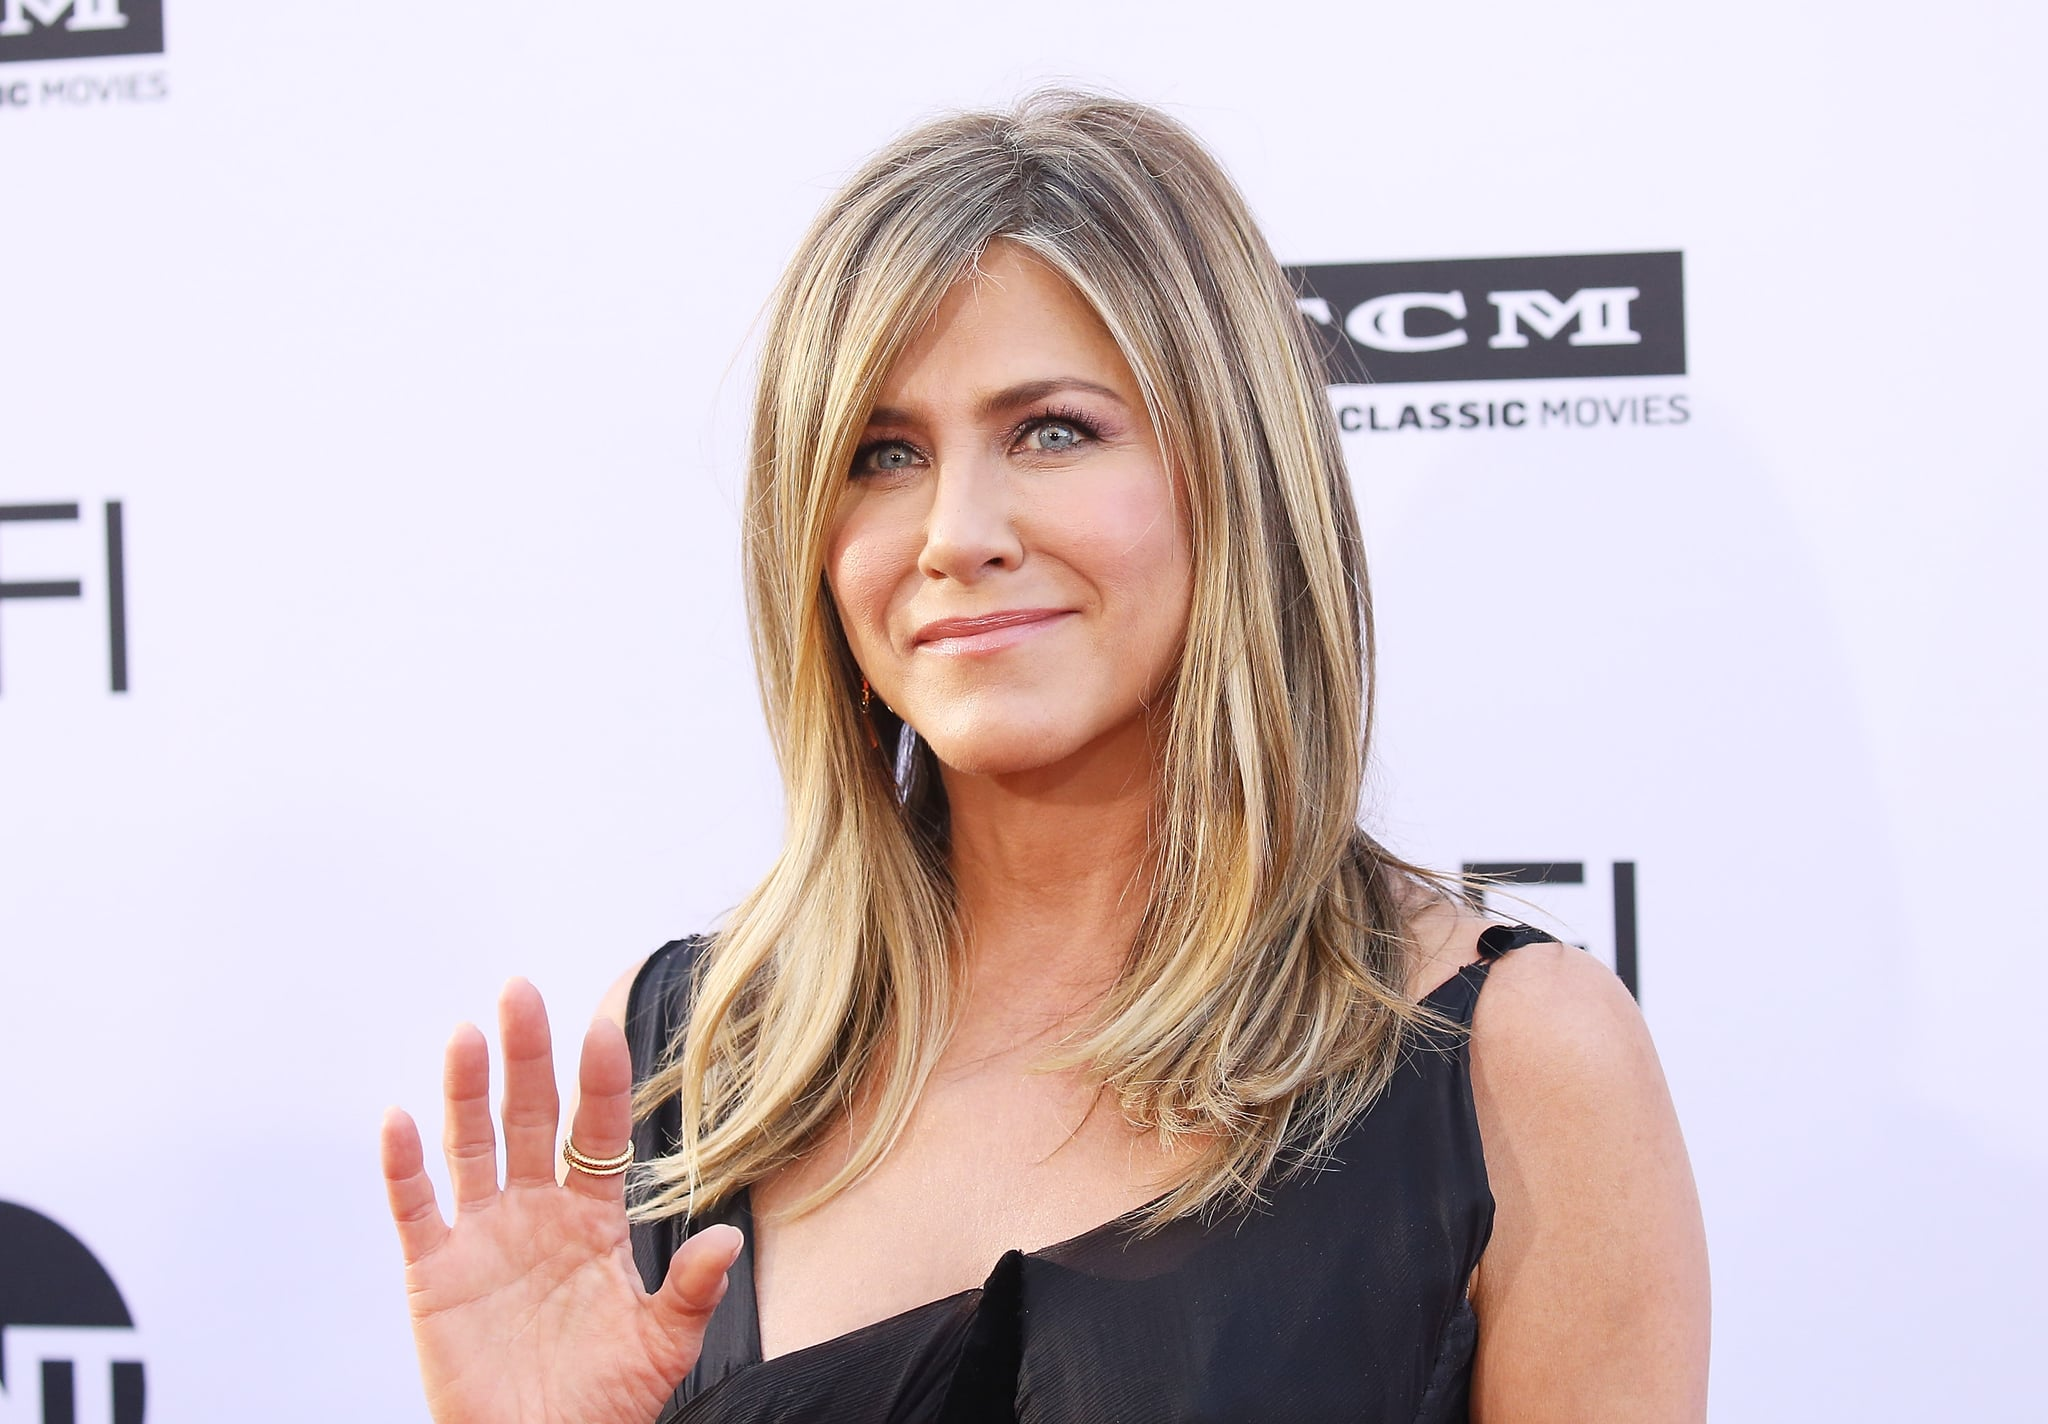 HOLLYWOOD, CA - JUNE 07:  Jennifer Aniston arrives to the American Film Institute's 46th Life Achievement Award Gala Tribute held on June 7, 2018 in Hollywood, California.  (Photo by Michael Tran/FilmMagic)